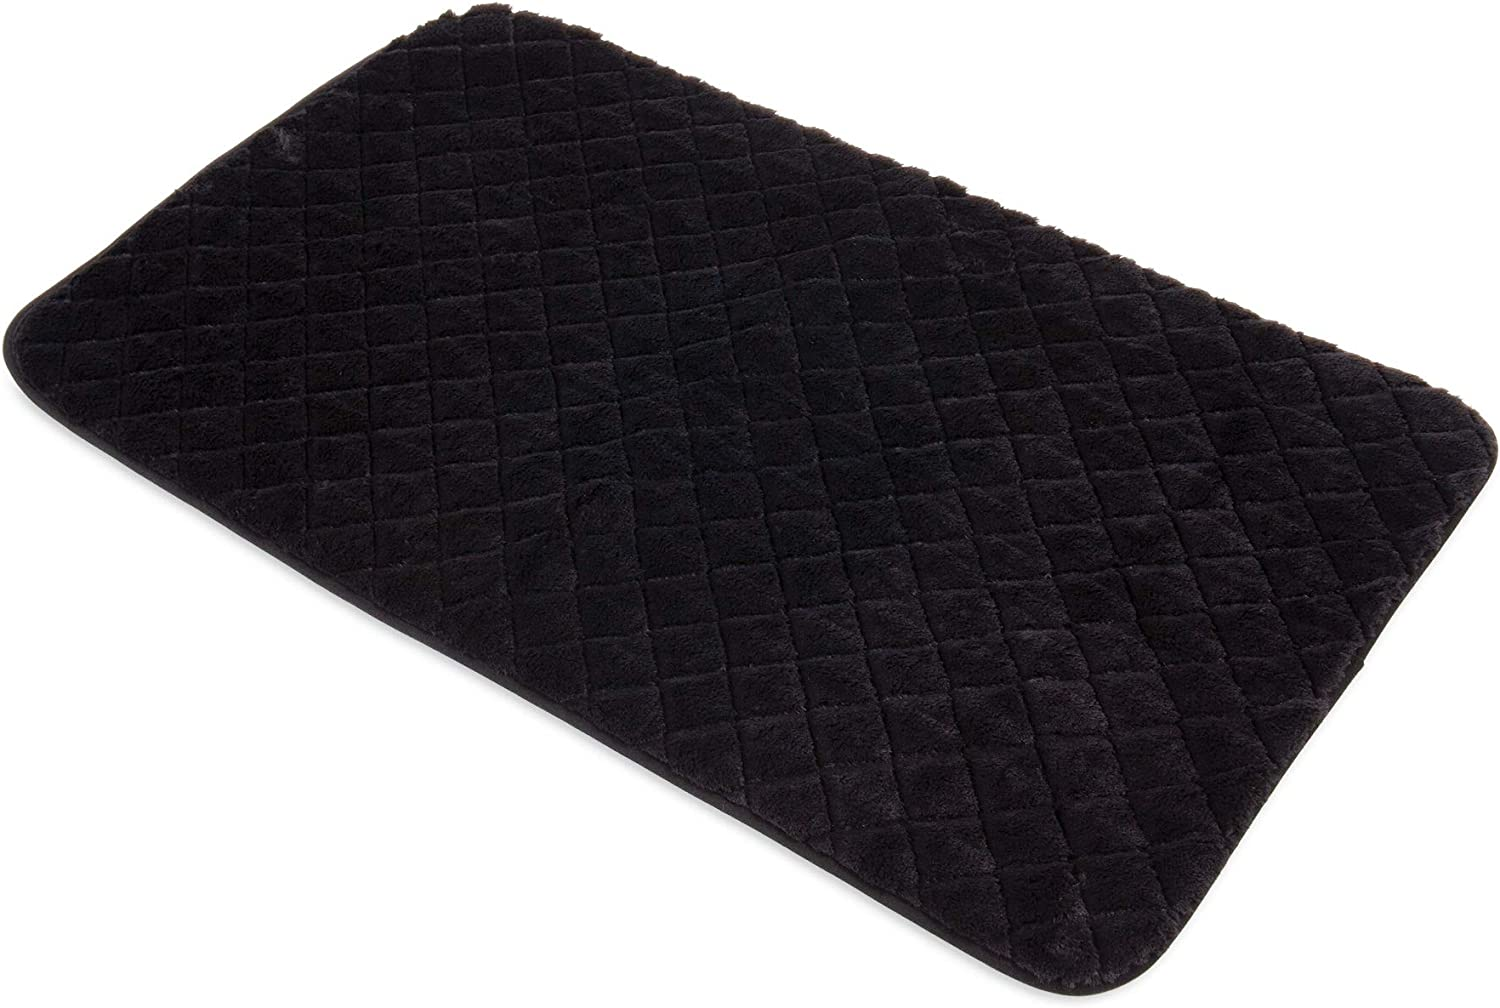 Precision Pet SnooZZy Sleeper Mat, Jumbo 6000, 49 x 30, Black by Precision Pet